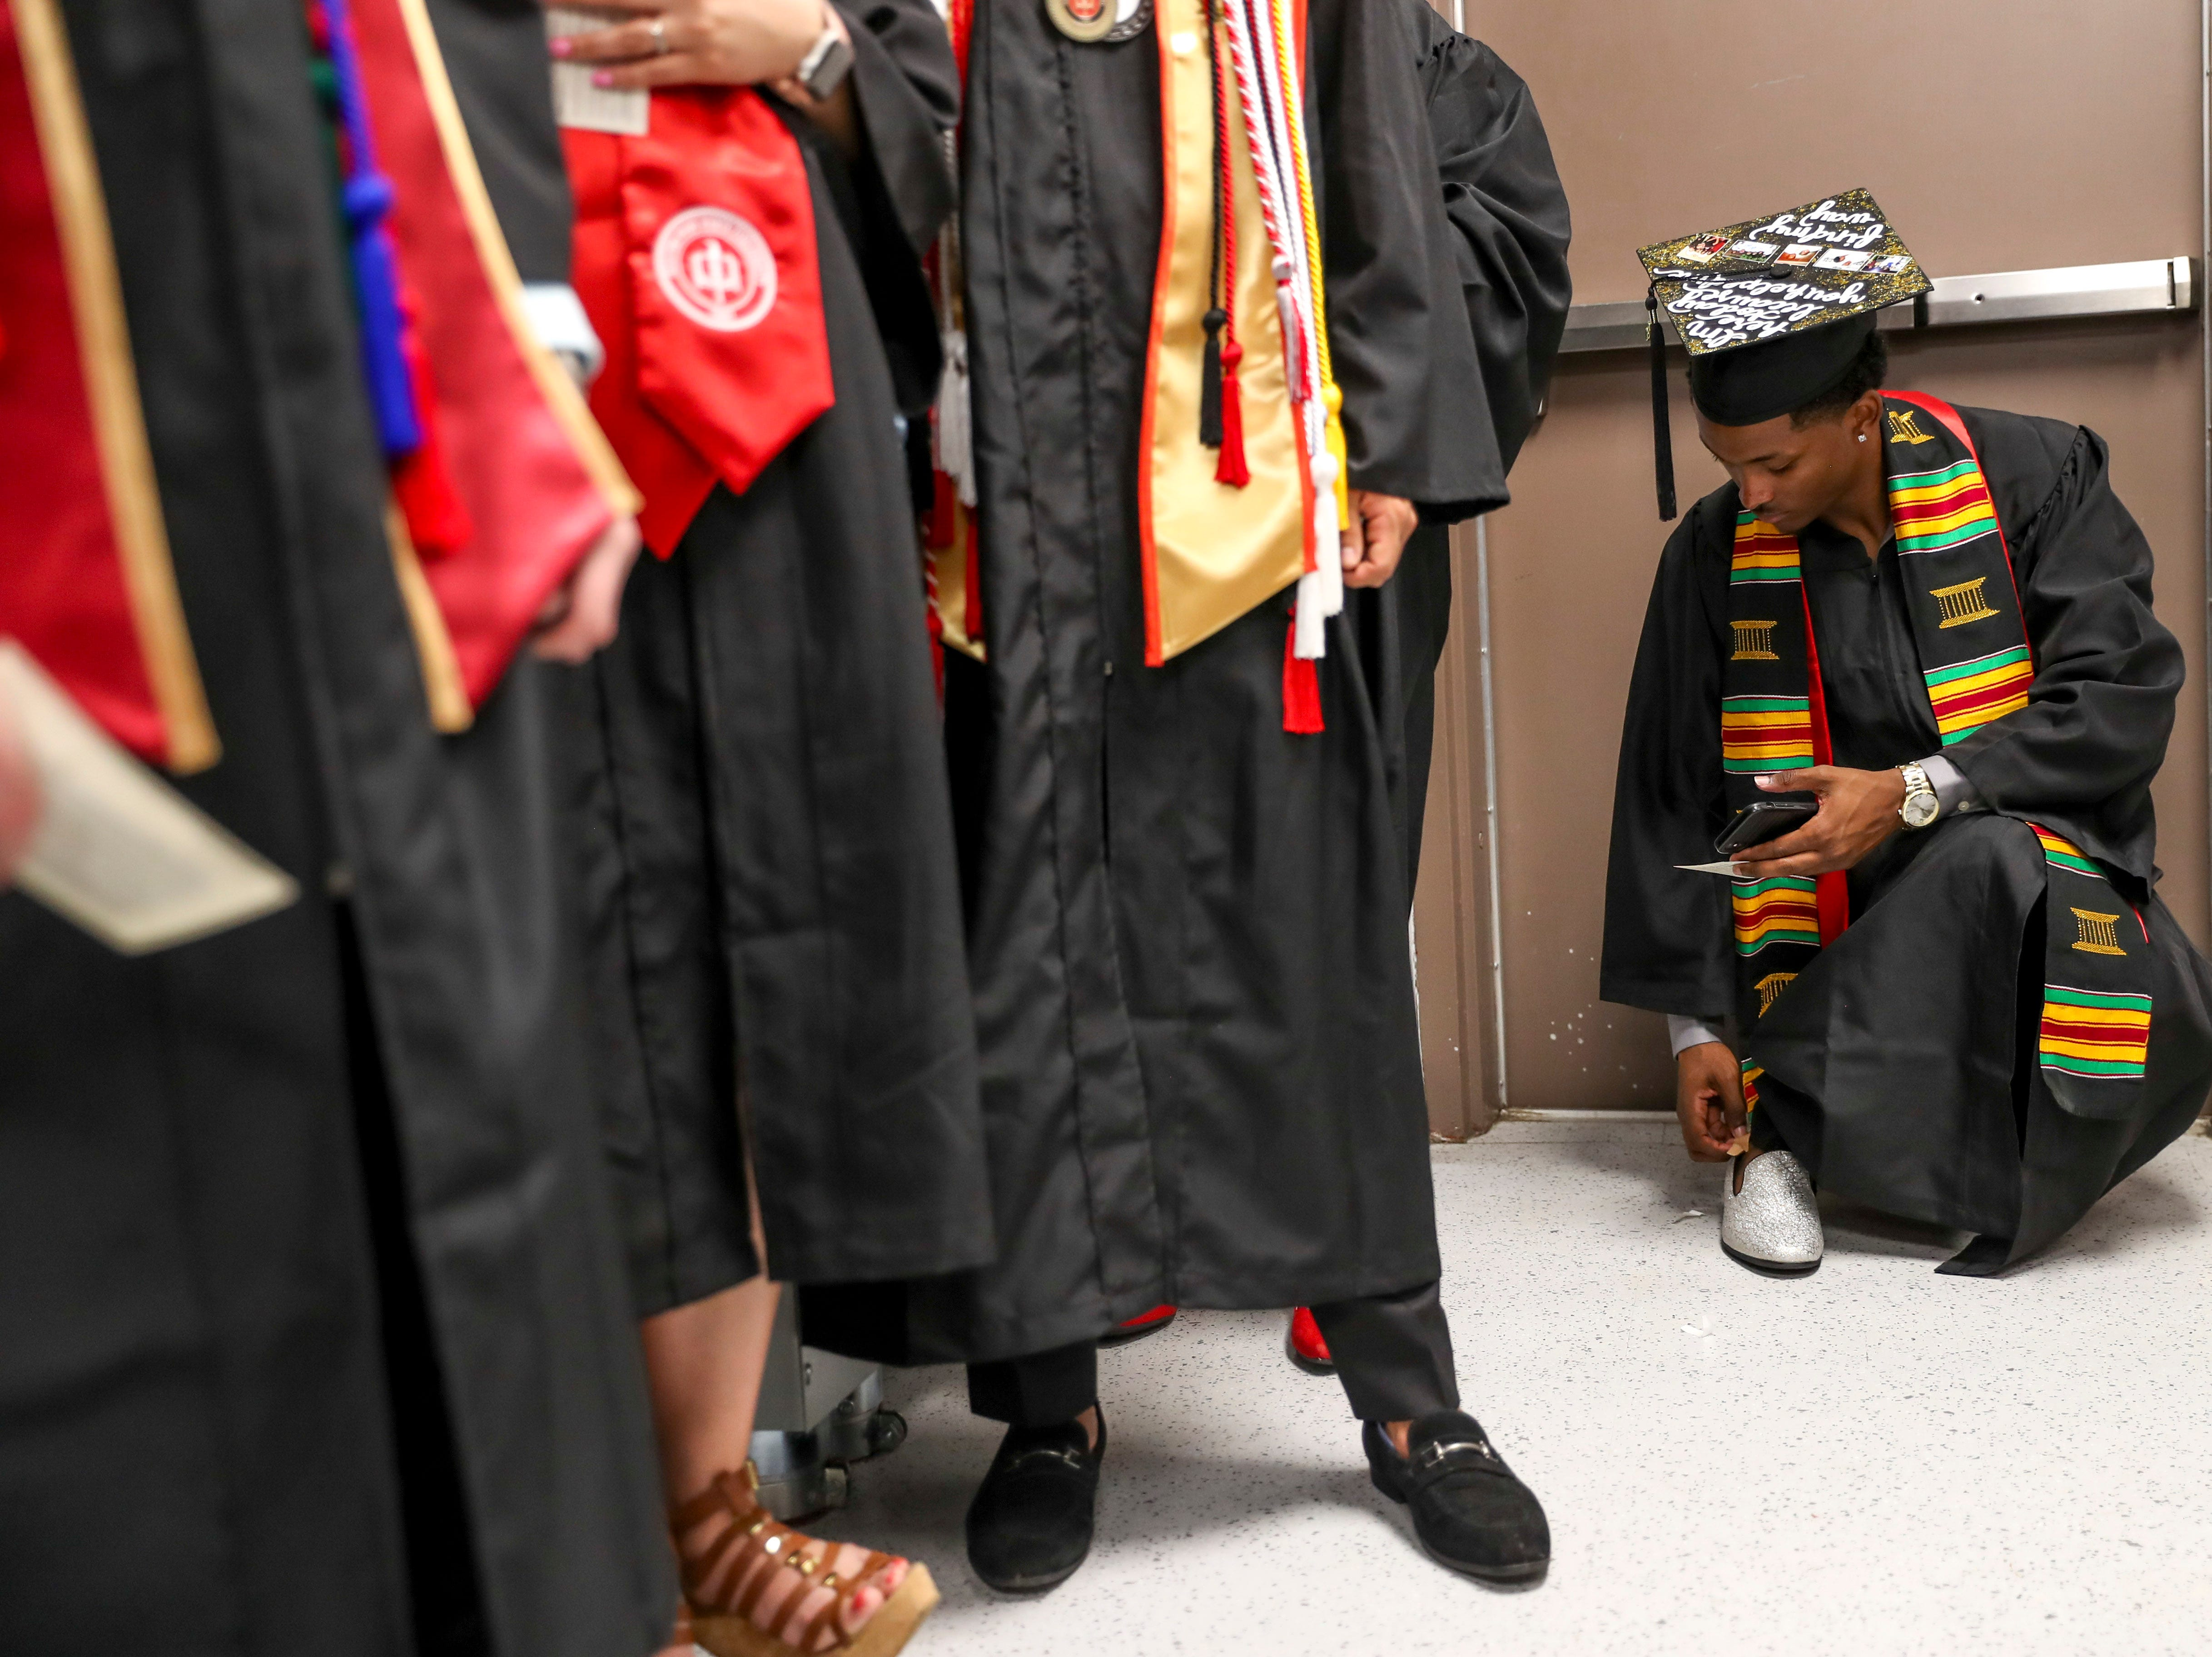 A student checks their socks in the back of the line at the Austin Peay spring commencement ceremony 2019 for College of Business and College of STEM at Winfield Dunn Center in Clarksville, Tenn., on Friday, May 3, 2019.